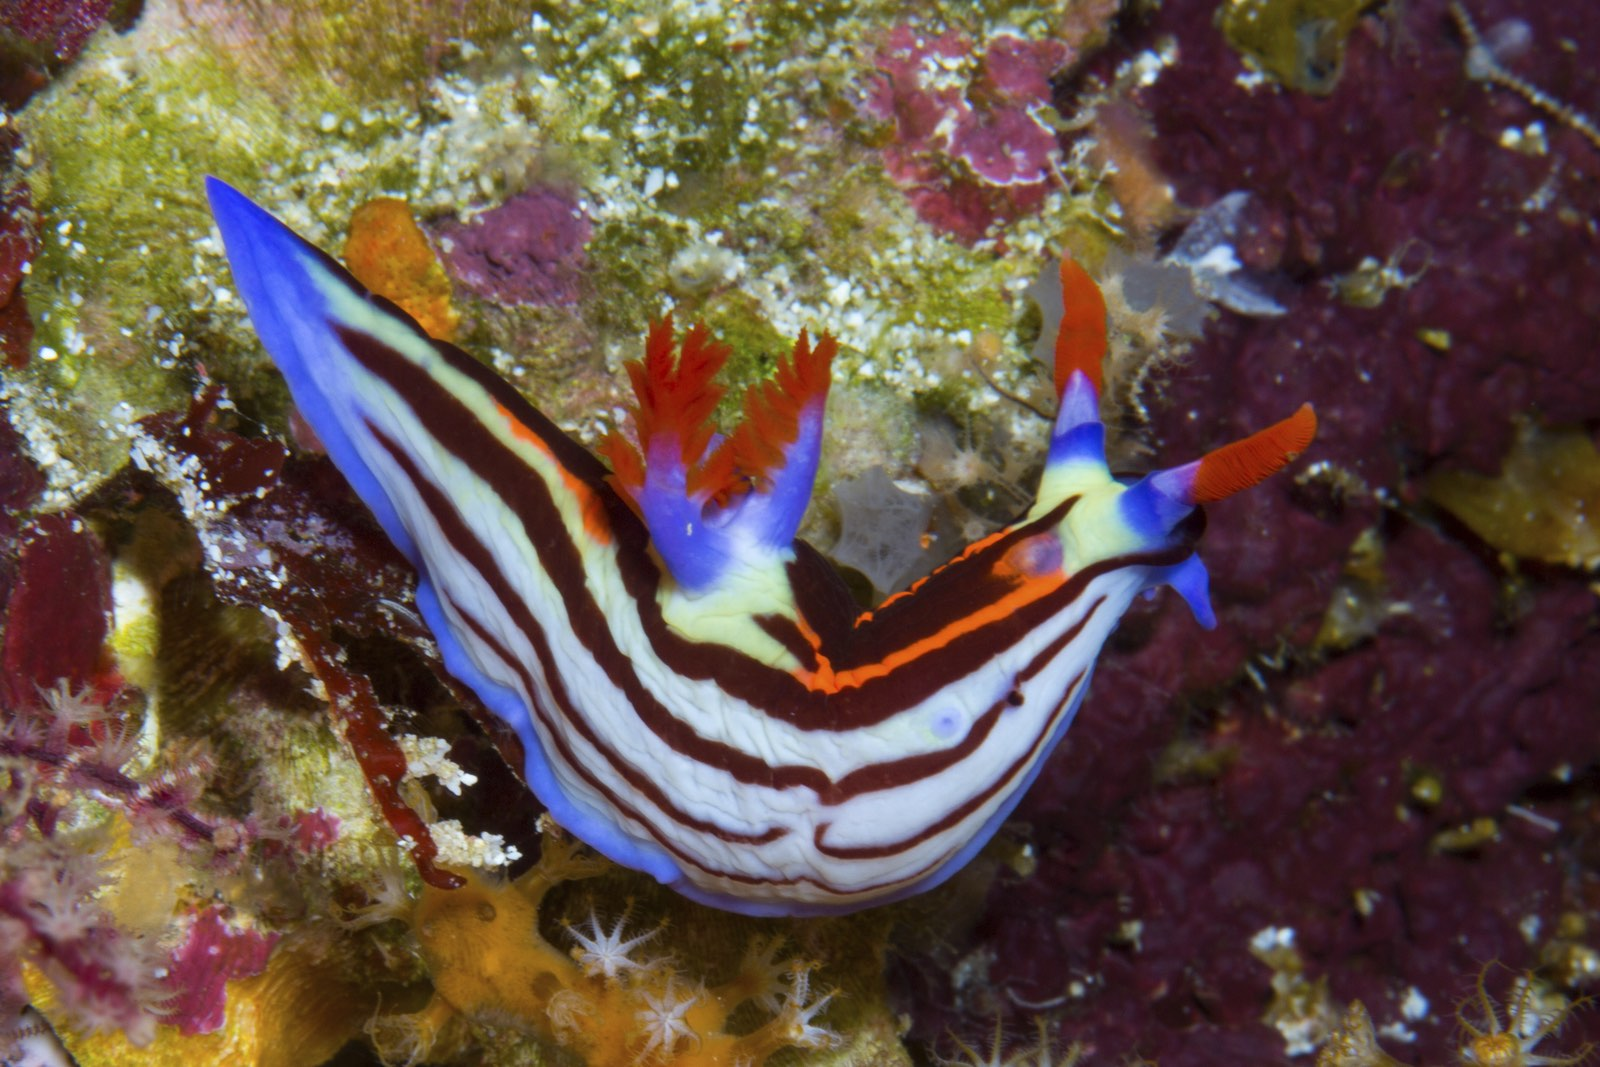 A nudibranch seen swimming on a sea floor near Timor-Leste, Atauro Island. Photo copyright: Conservation International/Photo by Mark Erdmann